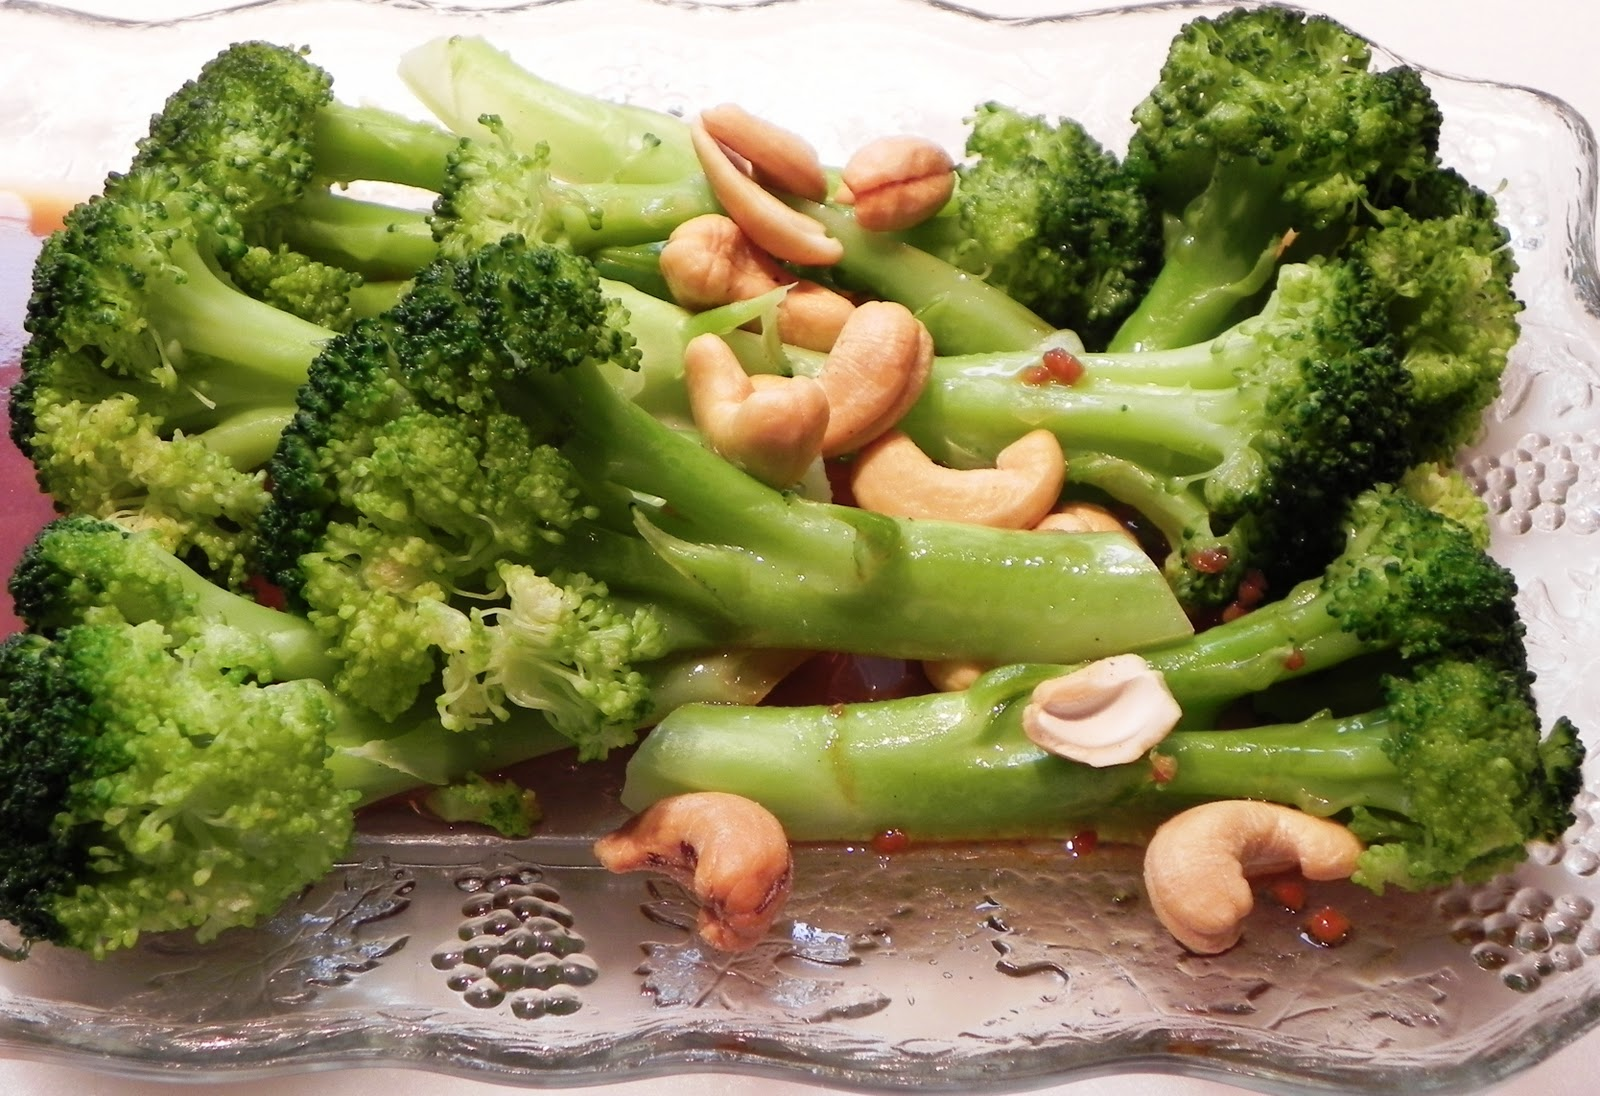 The Iowa Housewife: Broccoli with Garlic Butter and Cashews